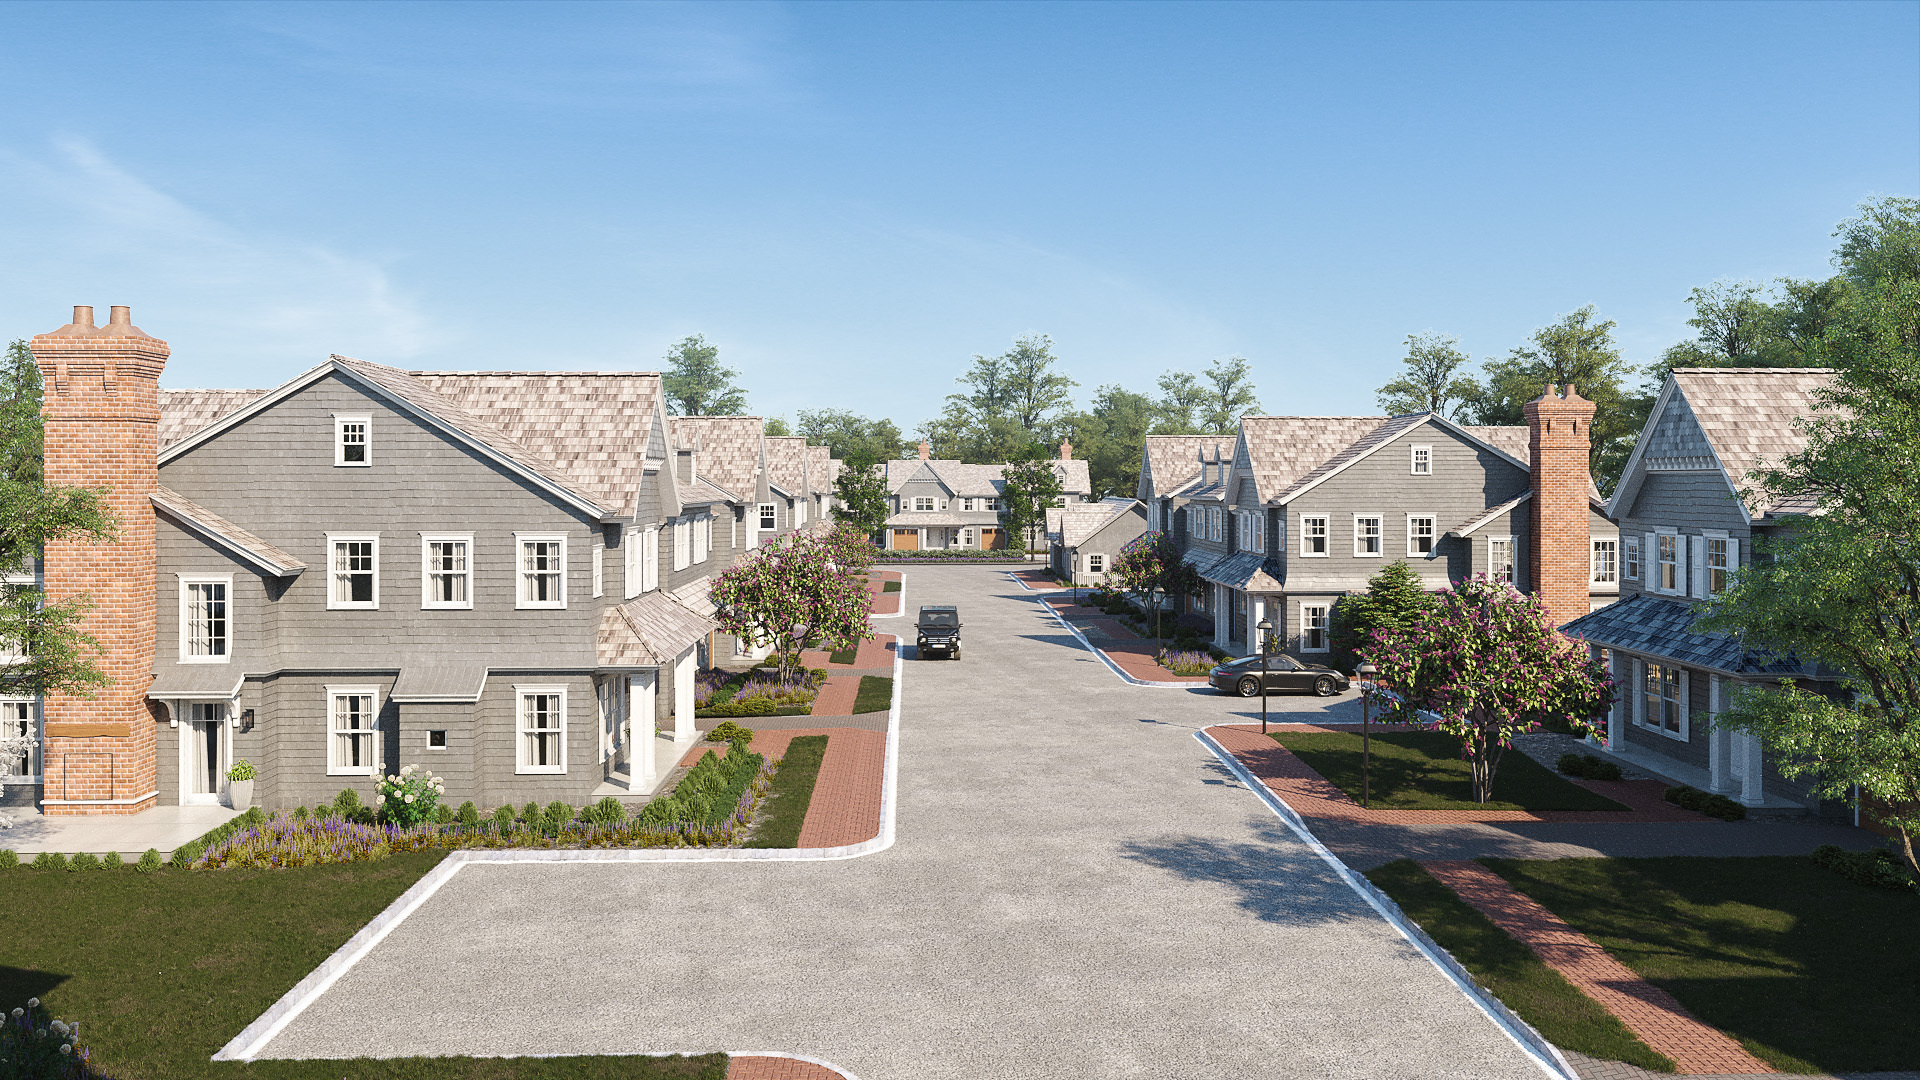 A streetscape rendering of The Latch at Southampton Village.